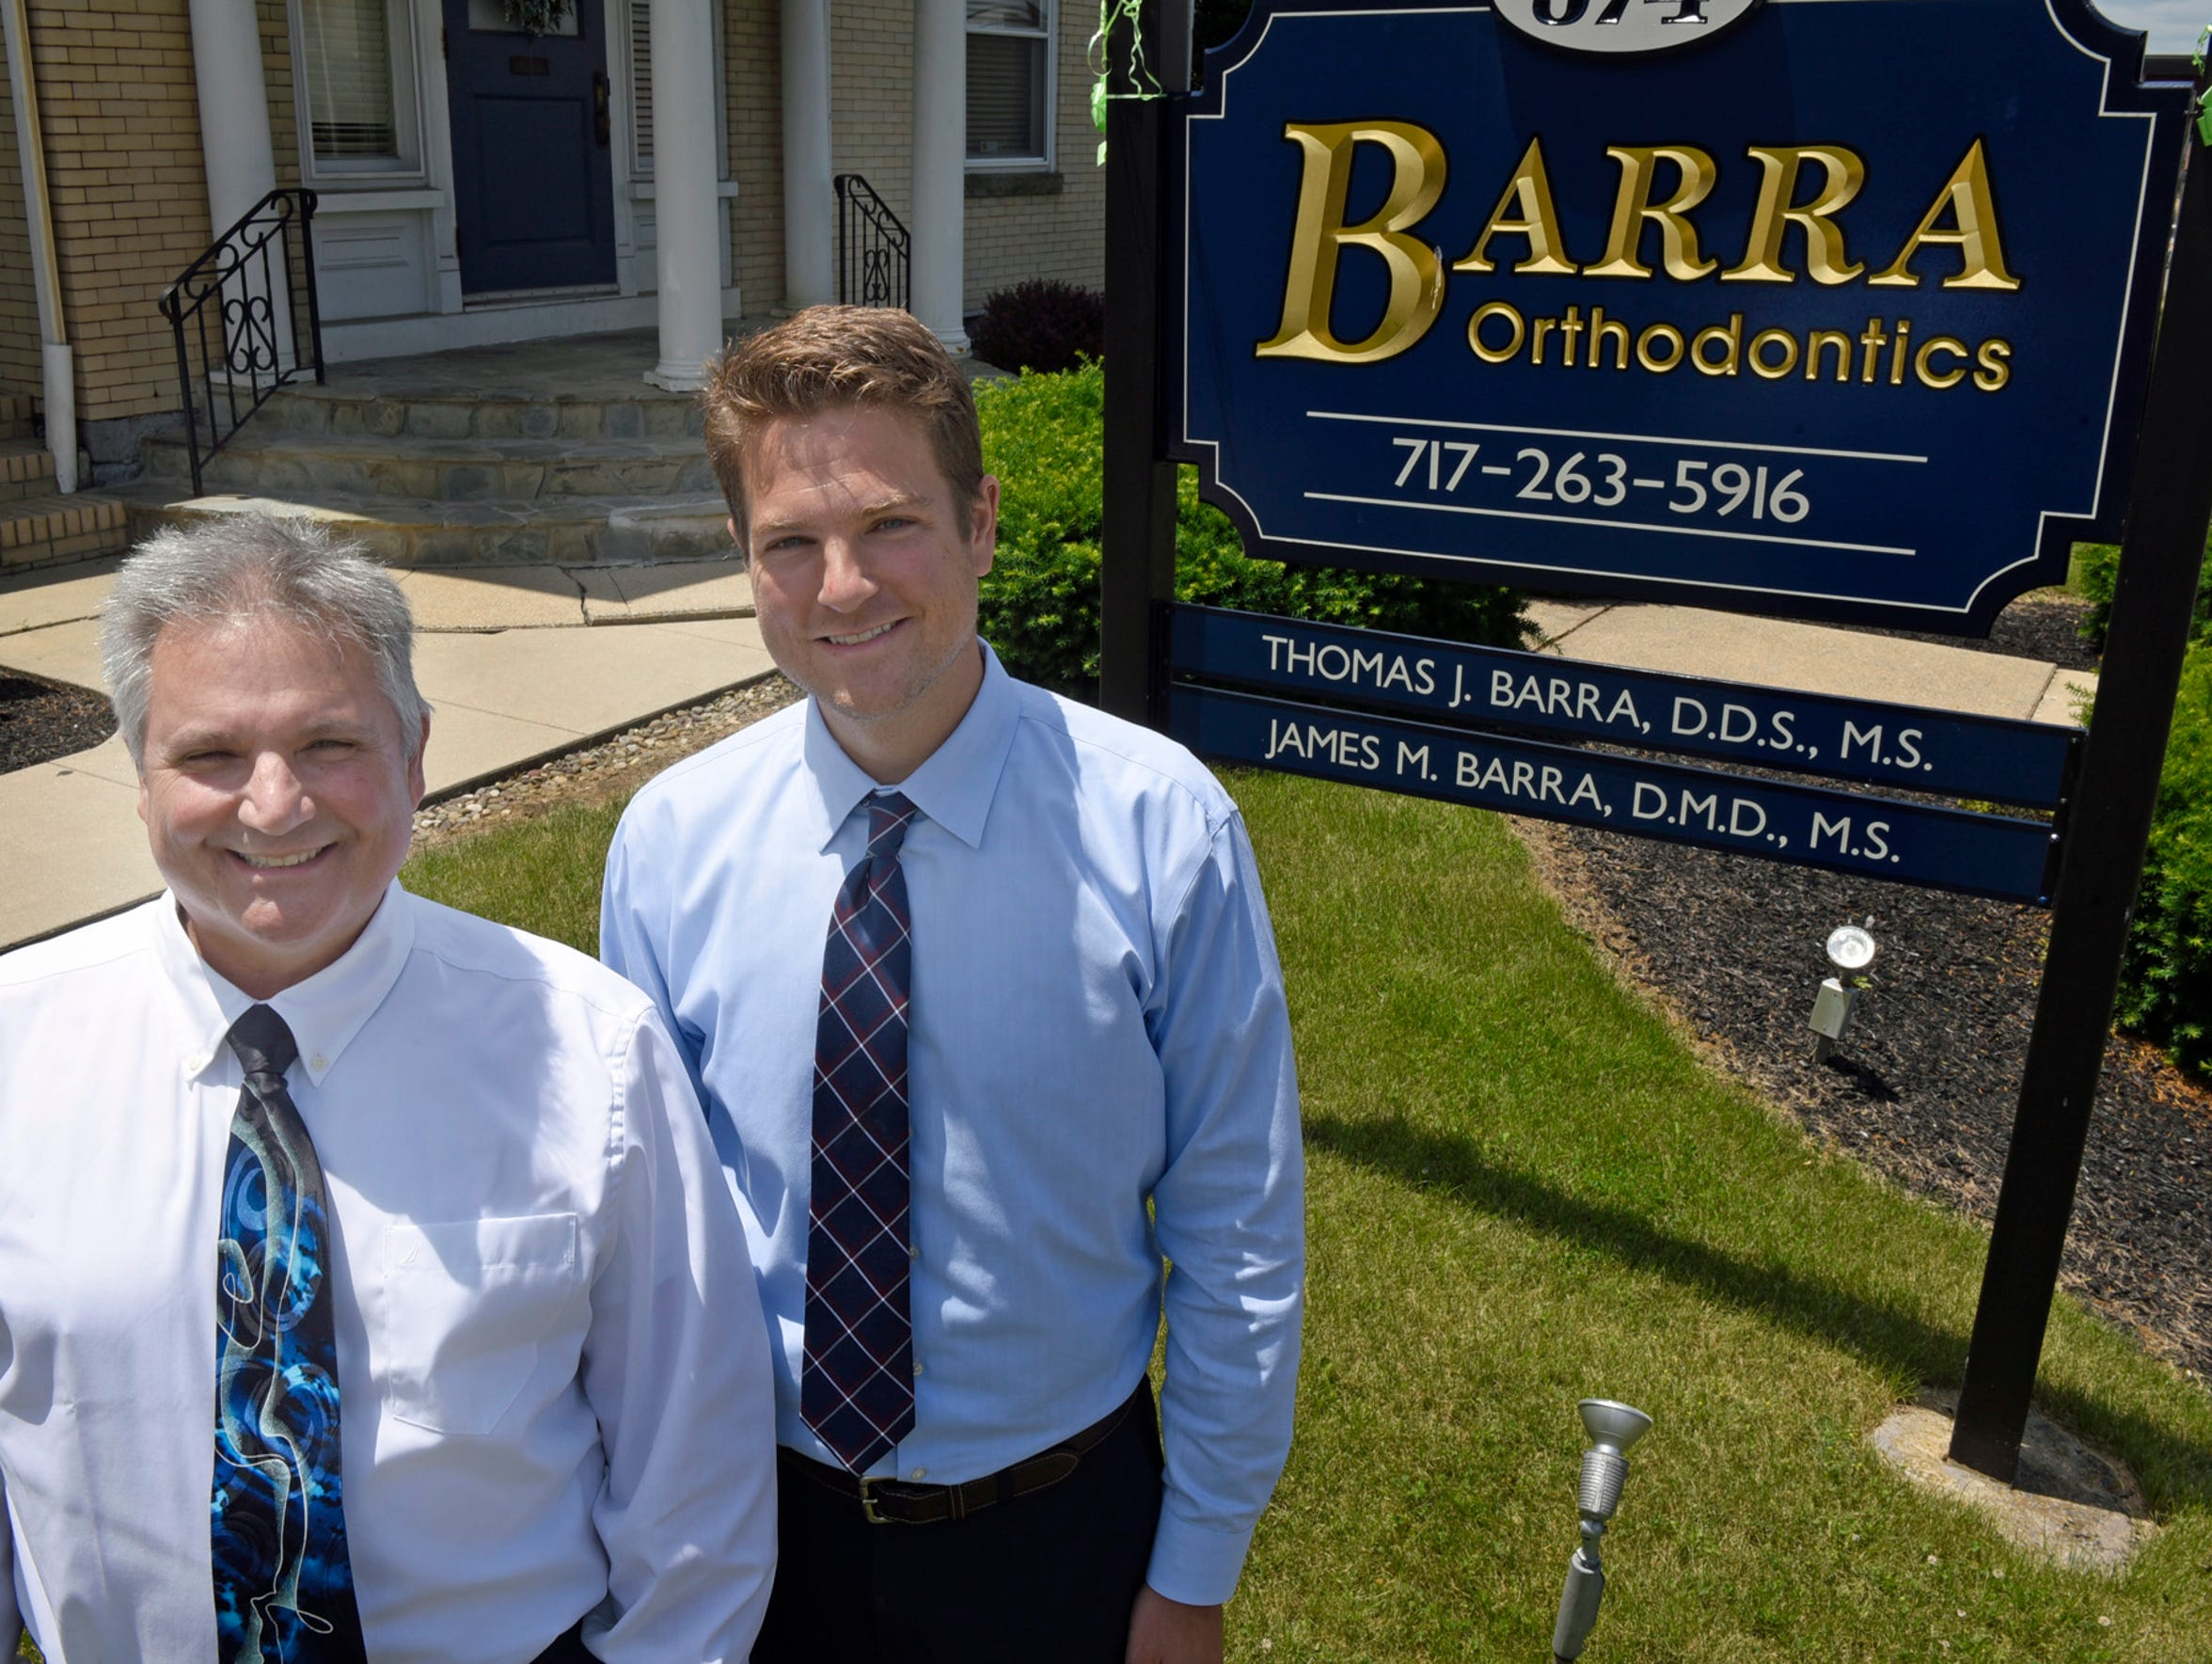 Tom Barra and his son, James, are both dentist at the